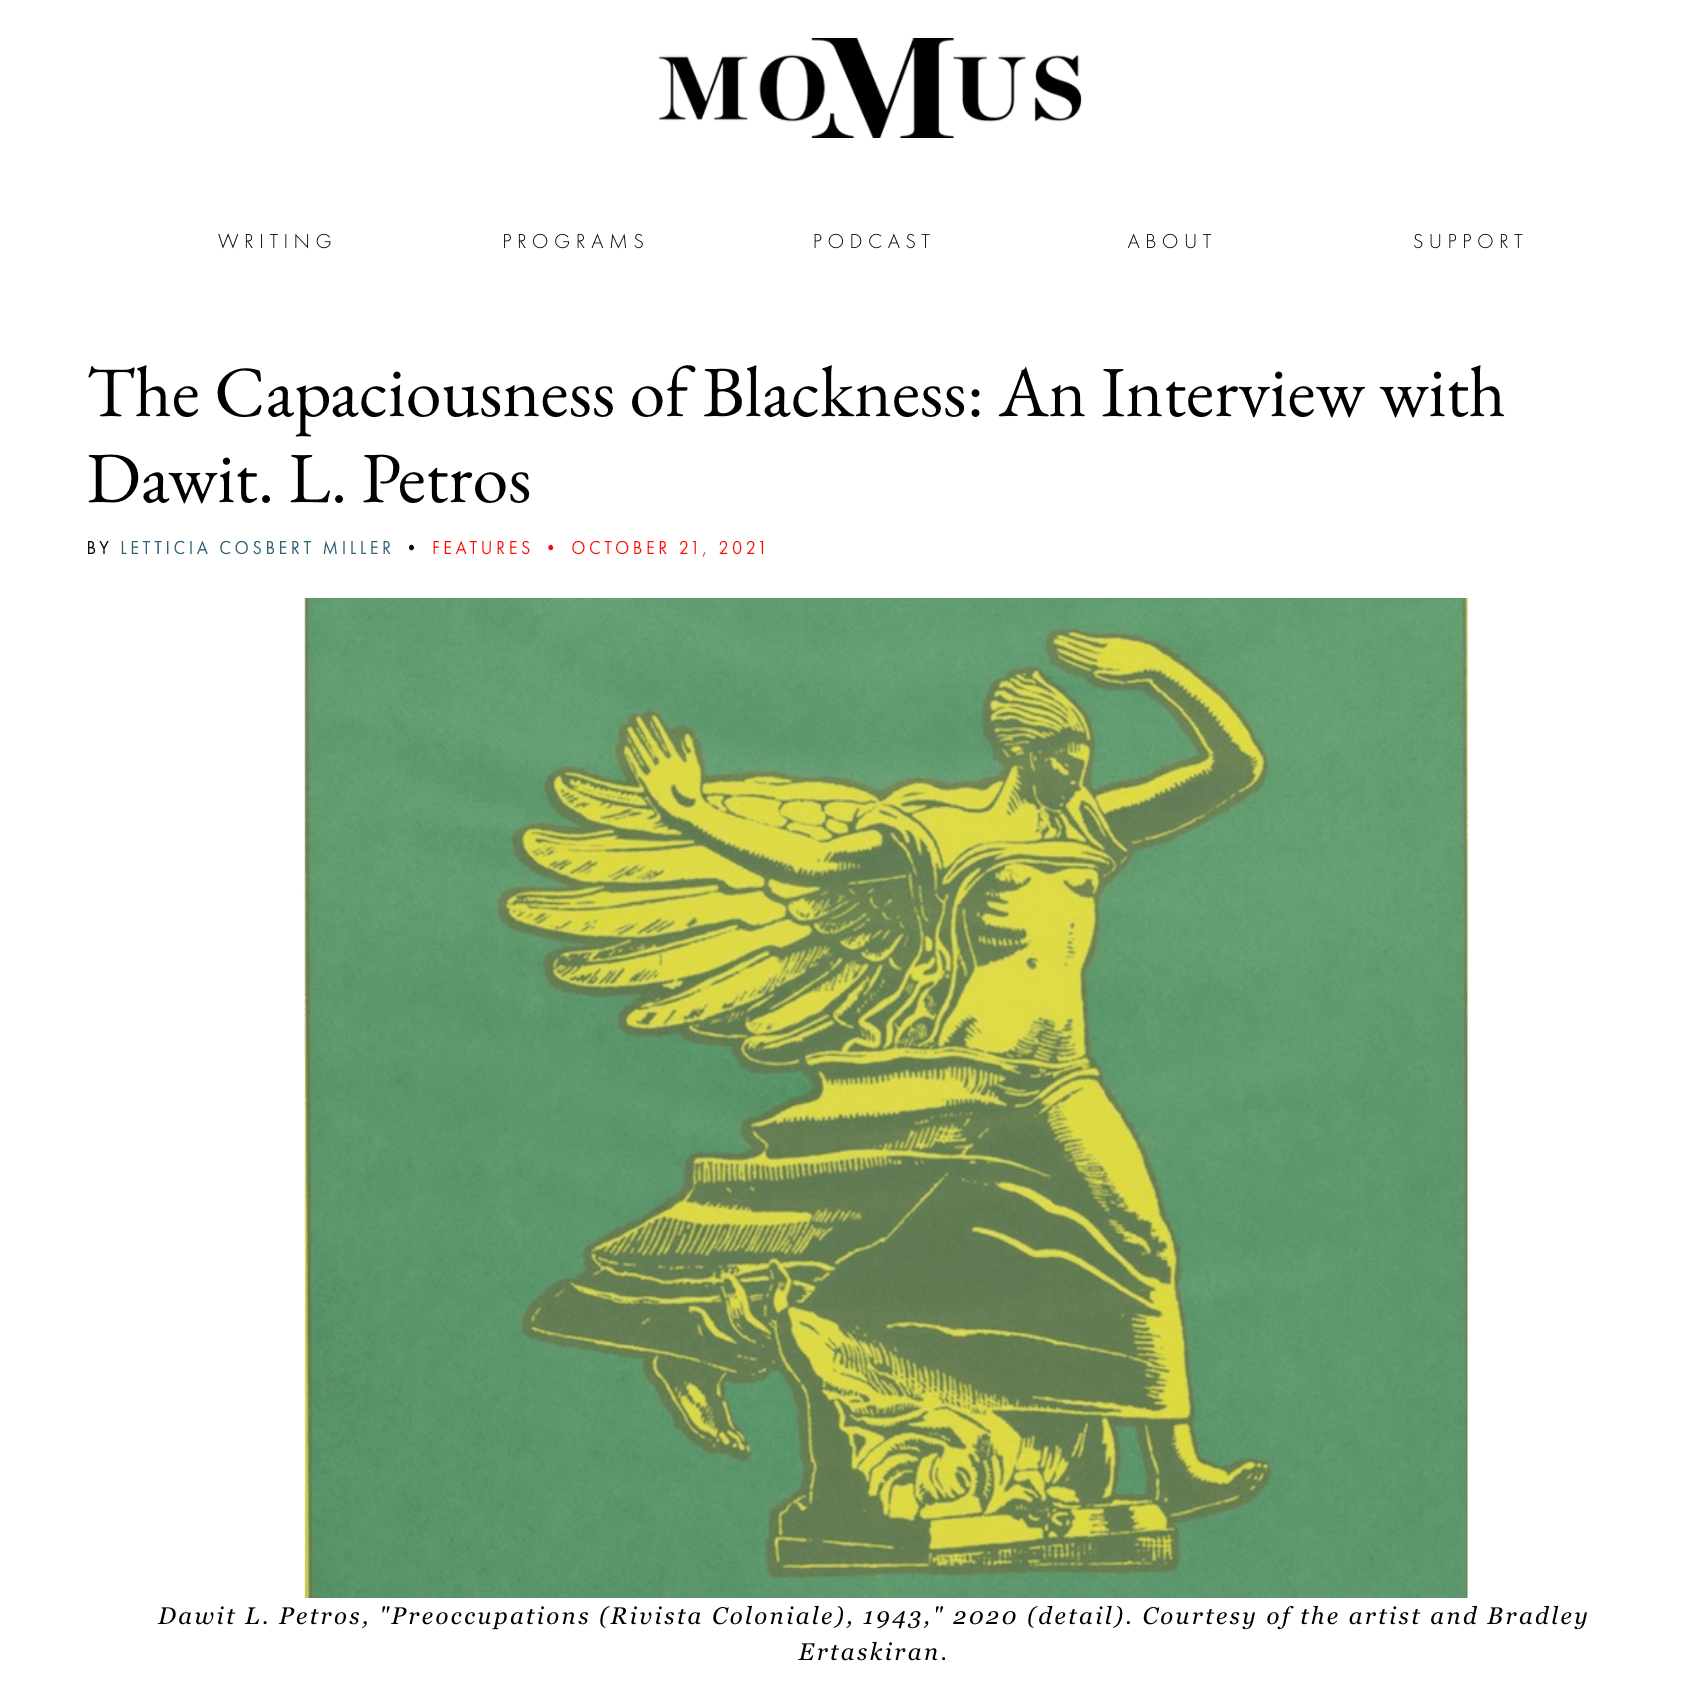 Dawit L. Petros: an interview published on Momus